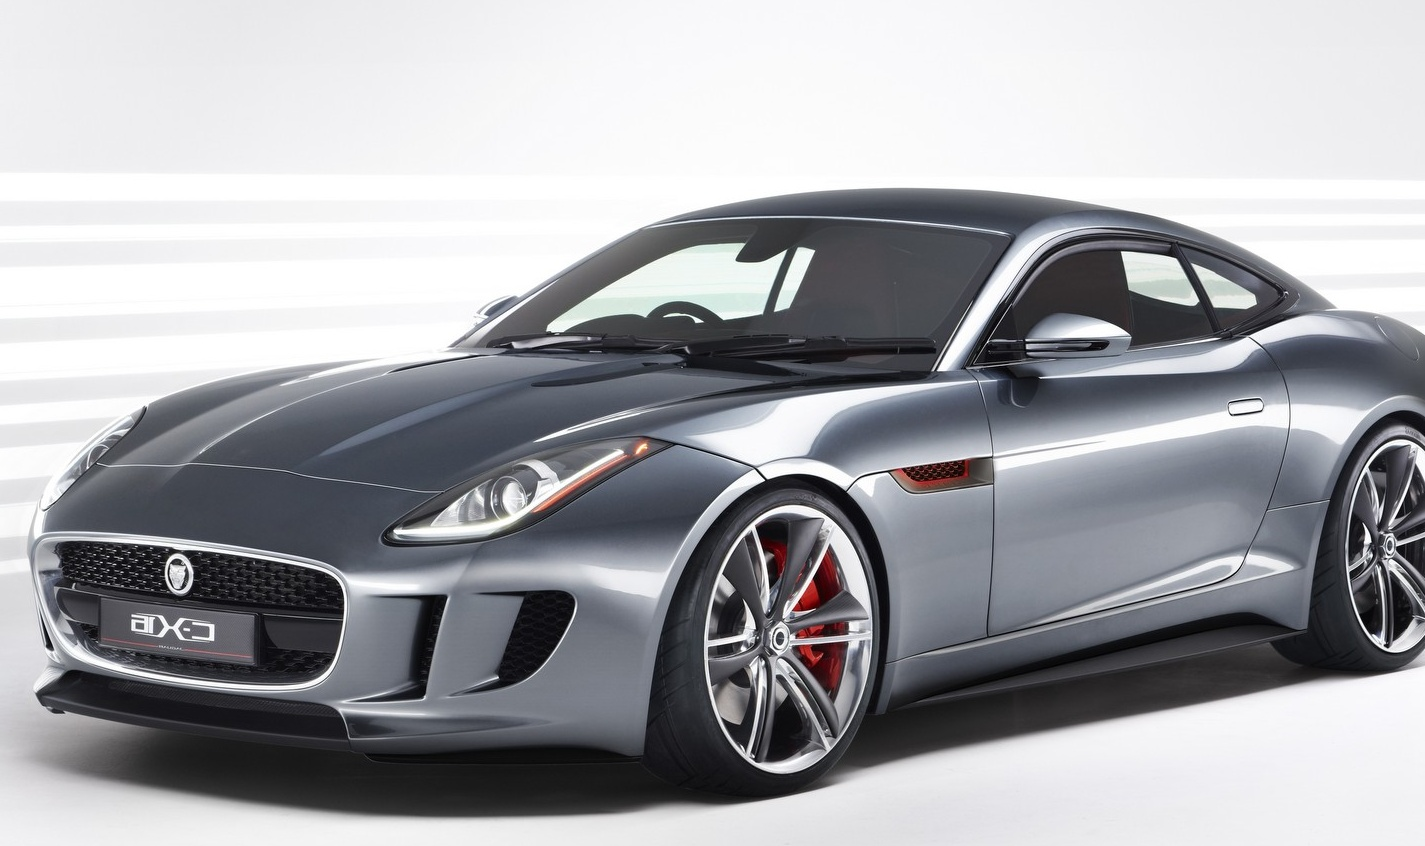 New Jaguar F-Type | The Driven Blog